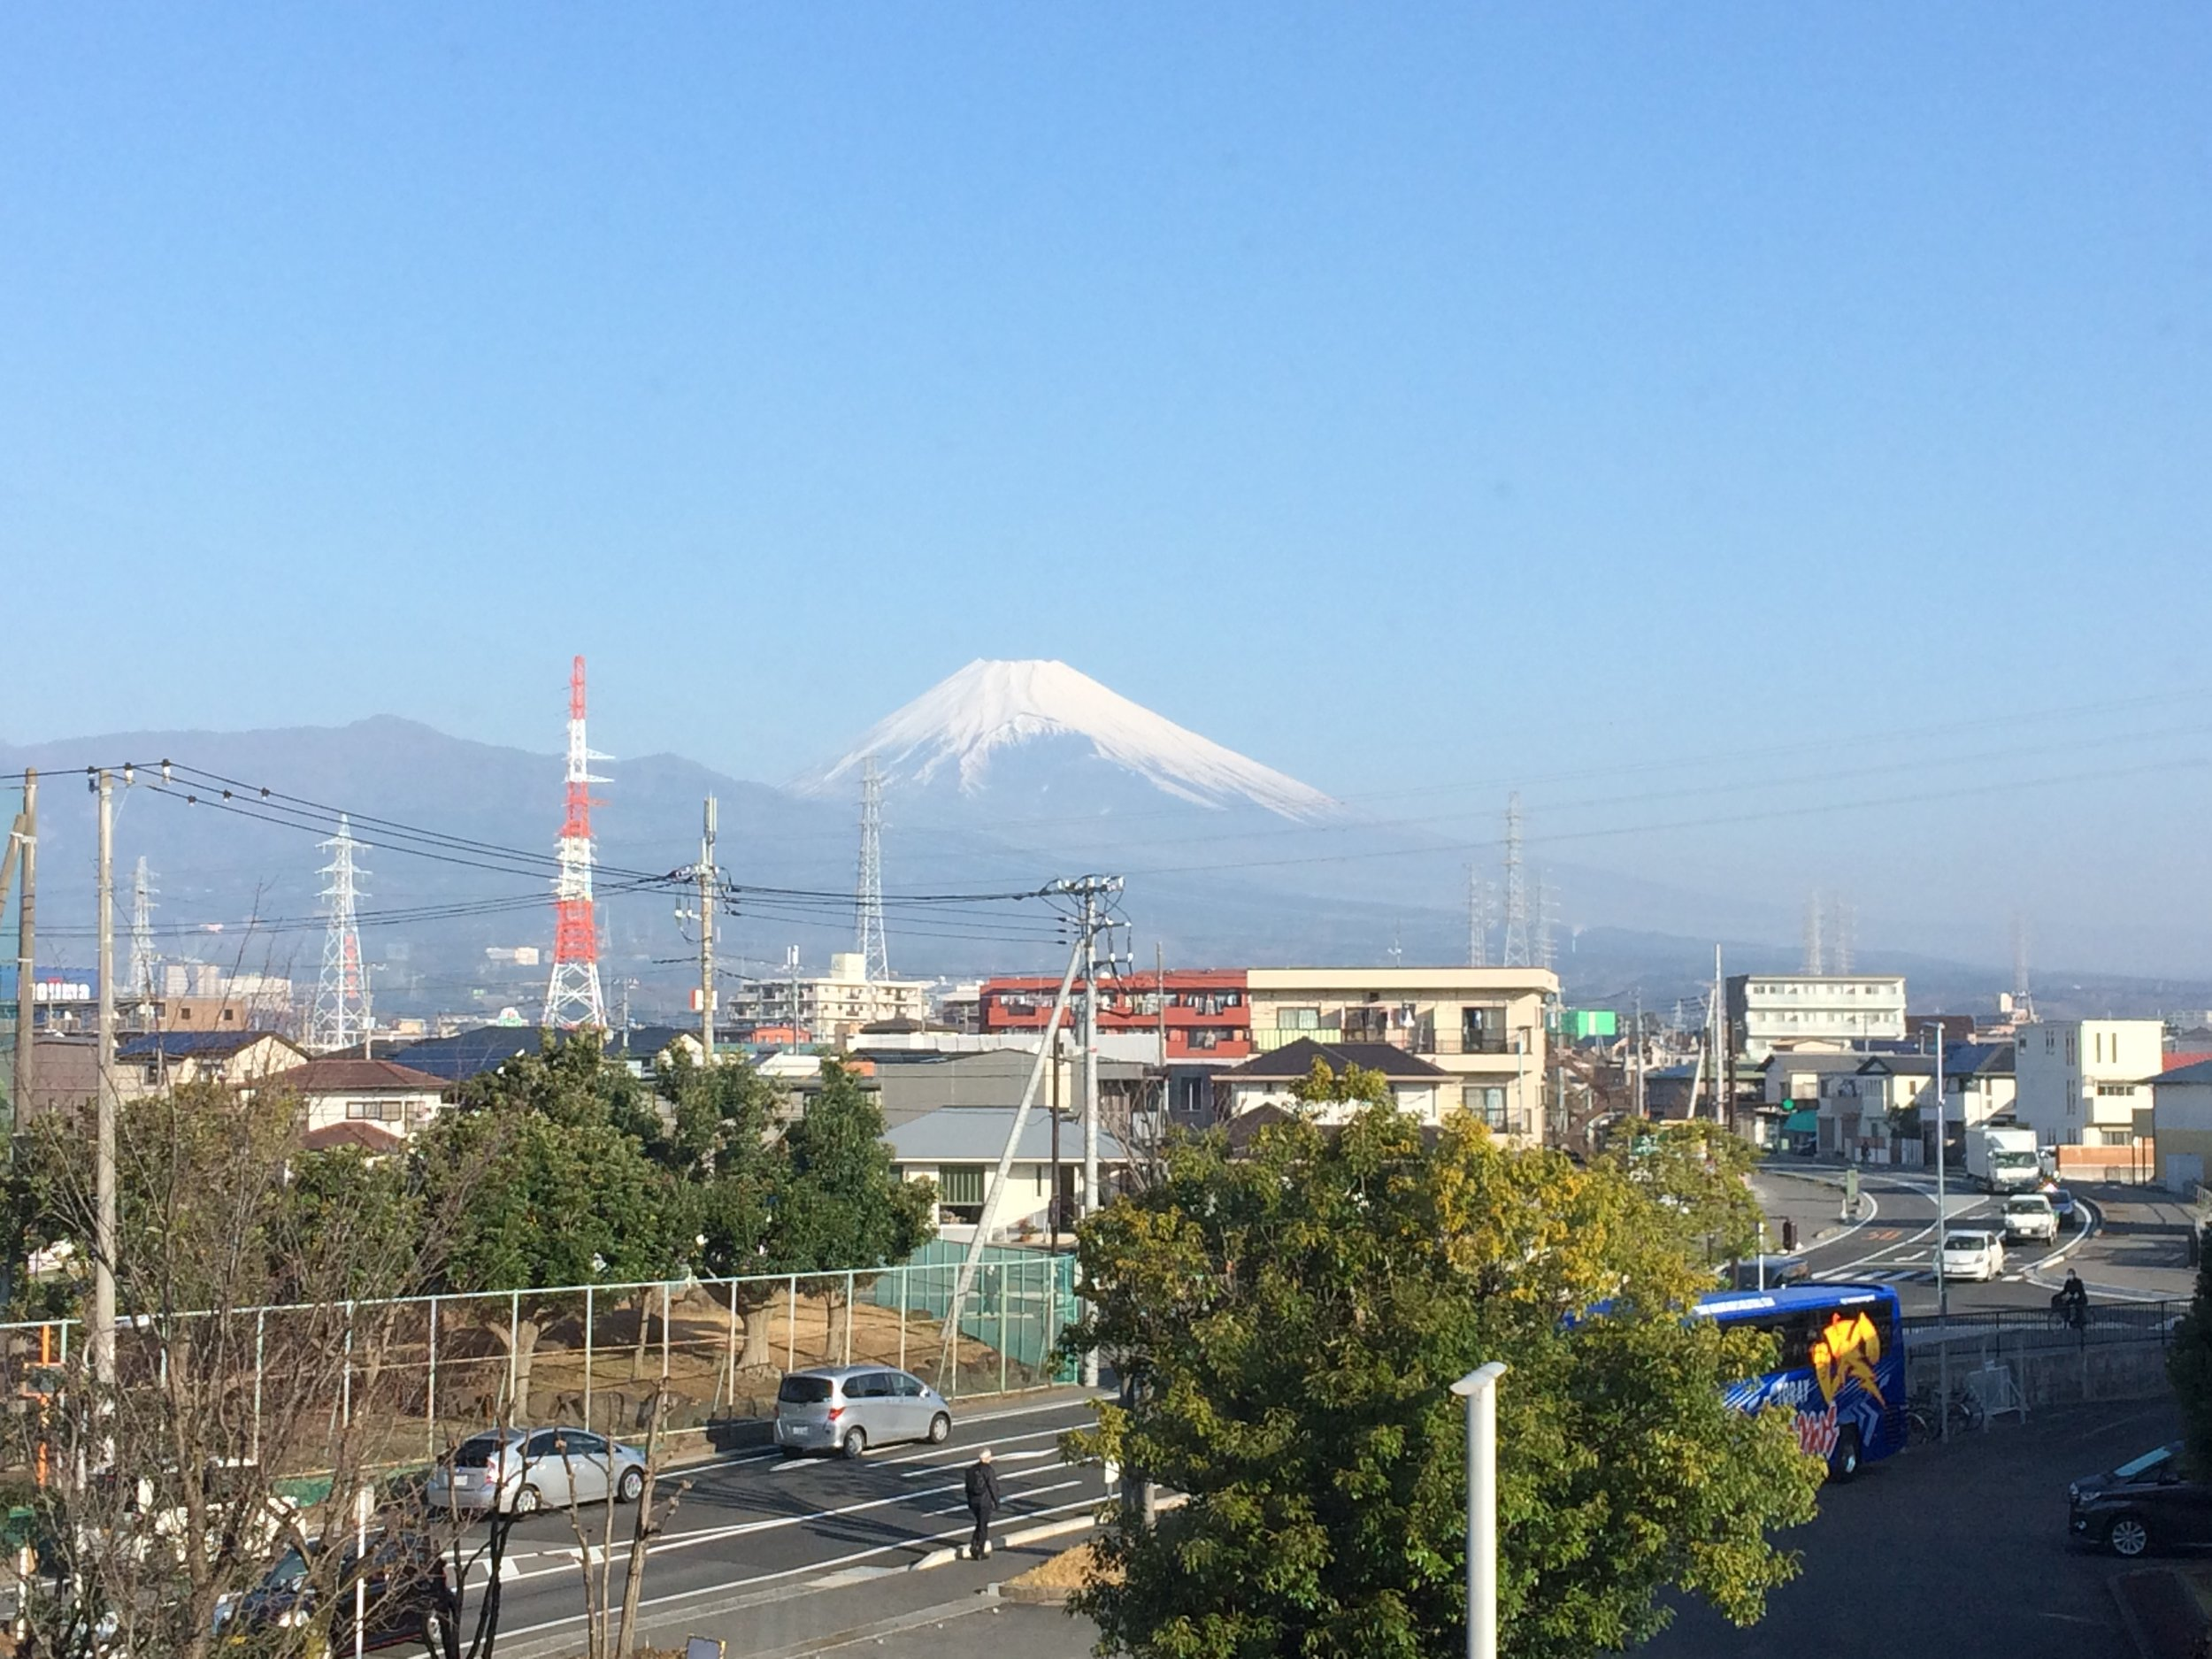 We enjoyed a beautiful view of Mt. Fuji ever morning during breakfast before the first session of the day.